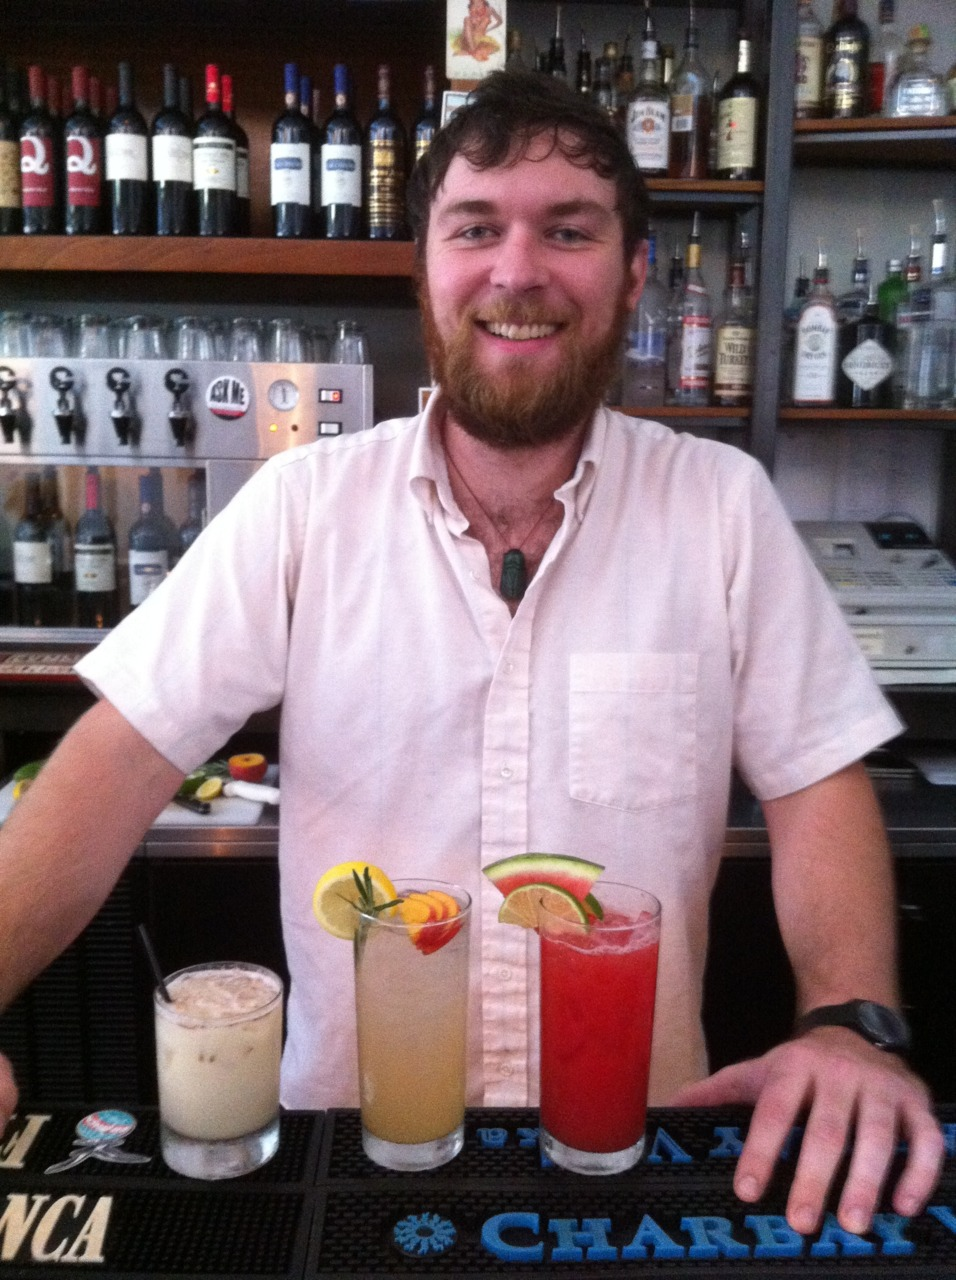 It's too hot! Looking for a thirst quencher? Stay away from soft drinks that tend to dehydrate. Our trusty bartender, Zack Kennedy, poses with three refreshing non-alcoholic drinks. Left to right, horchata (more on that below), lemonade with peach and rosemary, watermelon agua fresca. Horchata Our good friend, Bertis Downs, brought us a sack full of tiger nuts from Valencia, Spain. What are tiger nuts? Well, they're a tuber, not a nut (chufa in Spanish). They're so sought after, they have protected D.O.C. status. The nuts are ground and spiced with cinnamon to make a milky, yet dairy-free, beverage. It's served ice-cold, and wouldn't be bad at all with a splash of dark rum. In this form, it tastes like a light, summery eggnog. We have a limited supply at the moment, but look for it on our menu in the very near future. You may have seen horchata at Mexican restaurants. This is a close cousin, made from rice instead of tiger nuts.